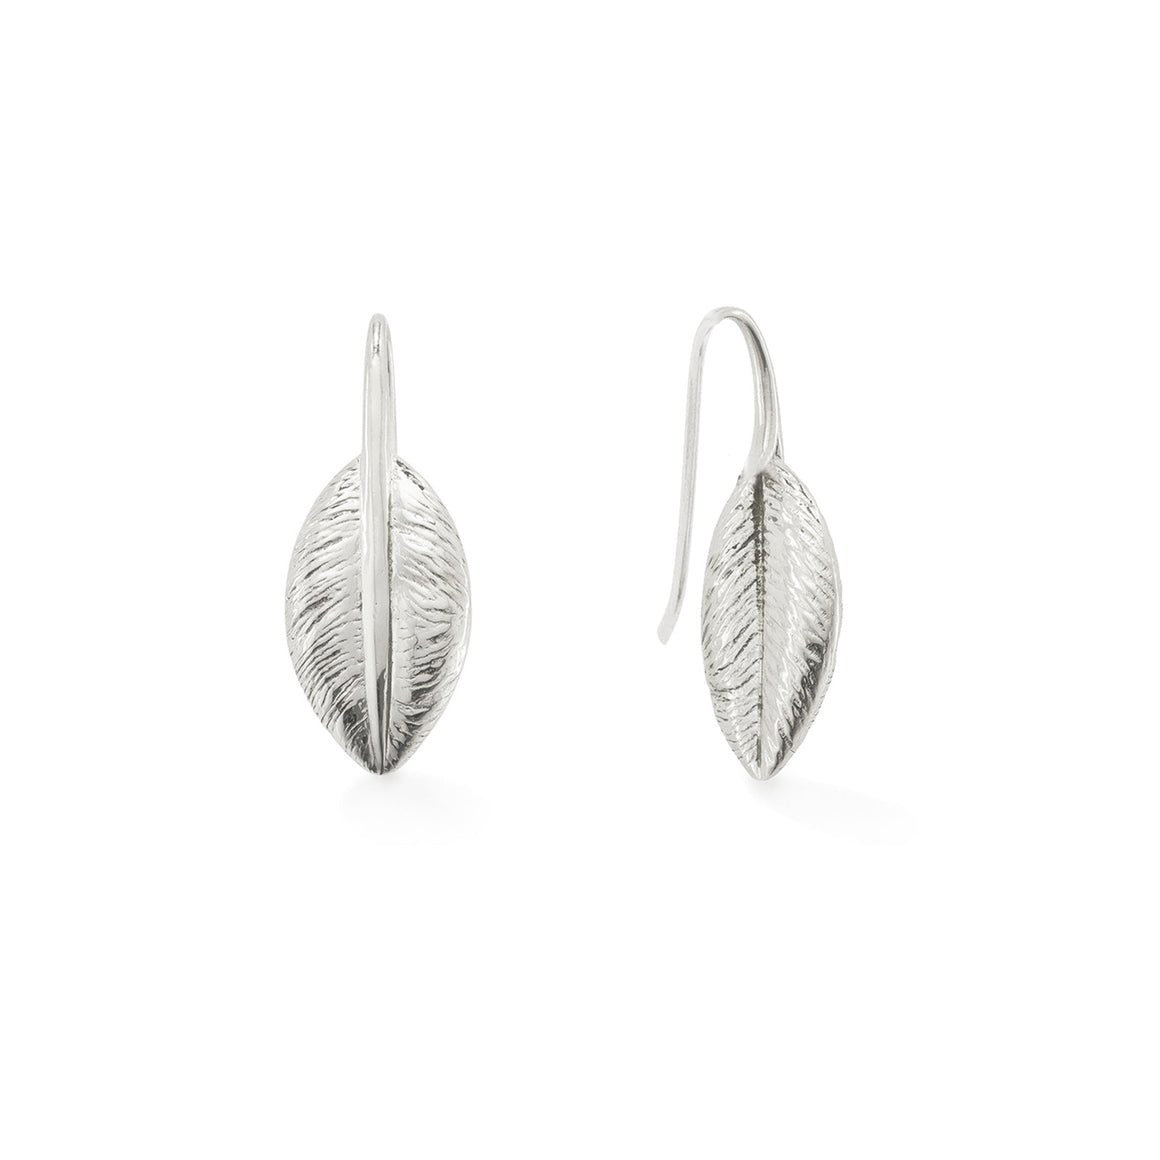 Friendship feather silver earrings by OAK Jewellery